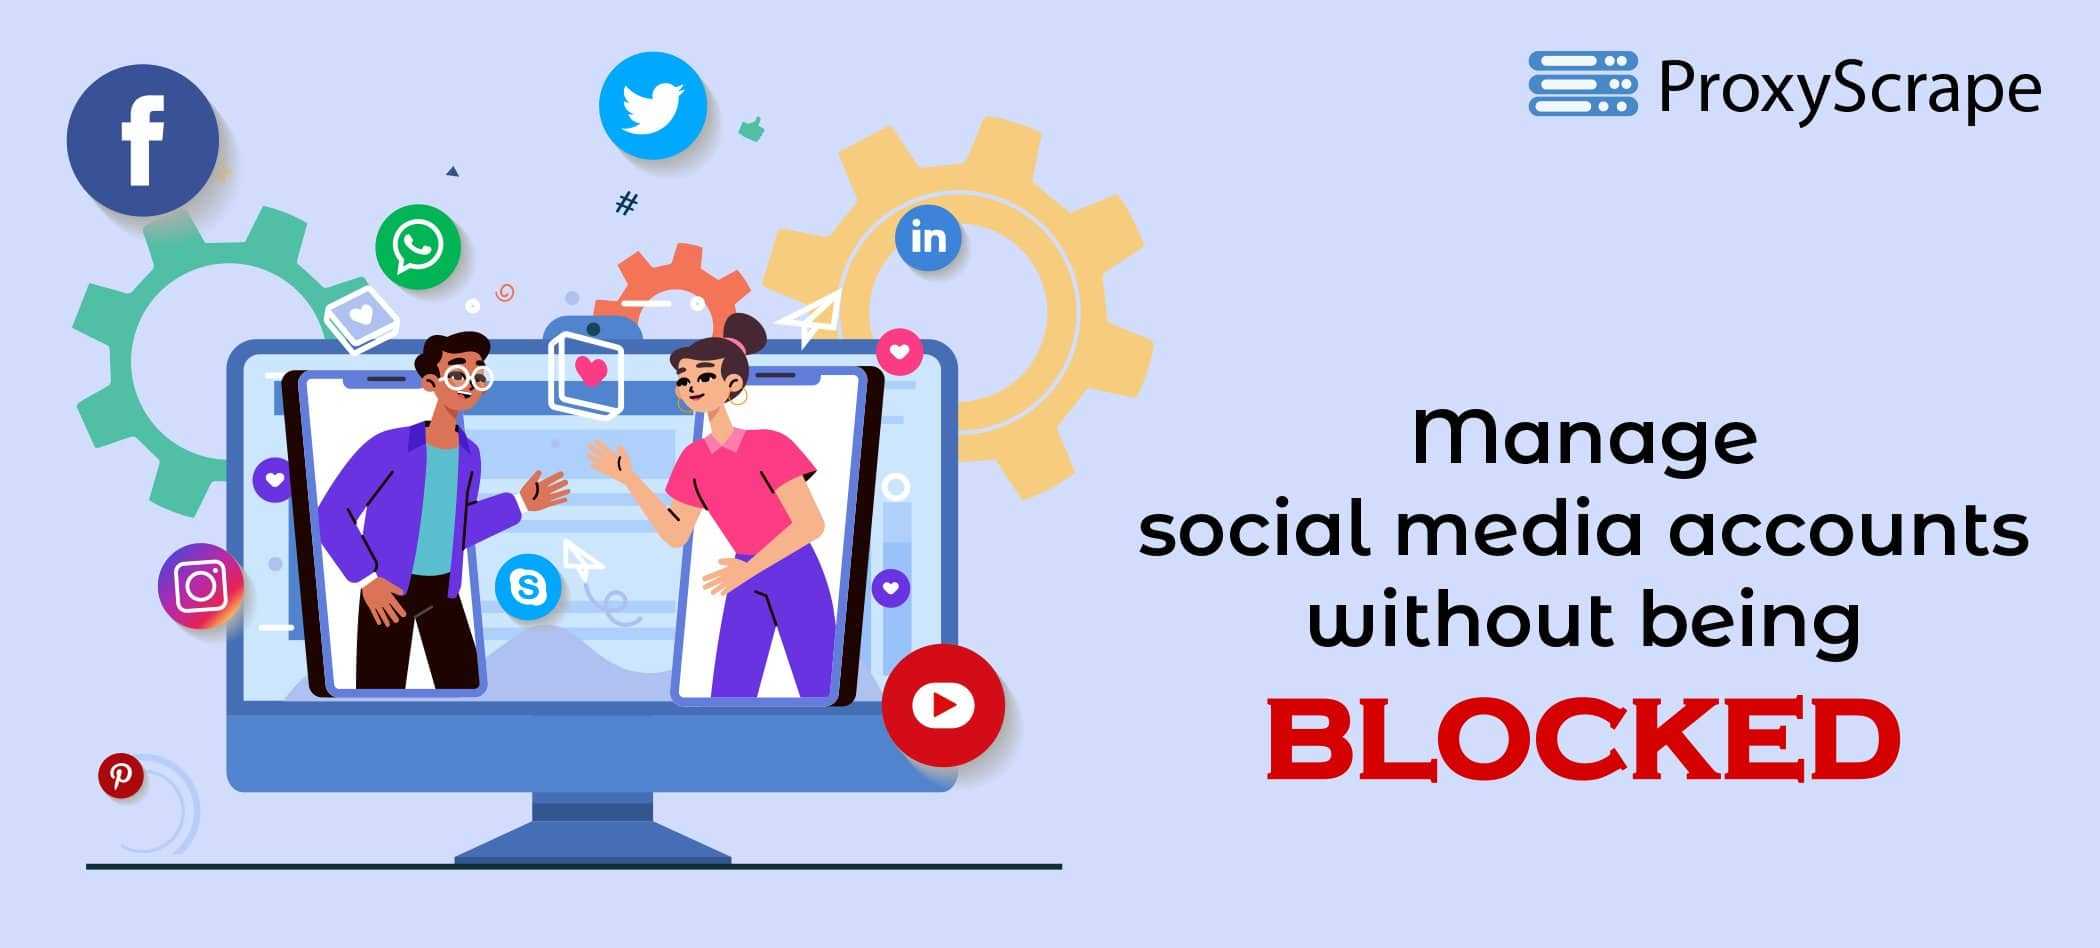 manage social media accounts without being blocked